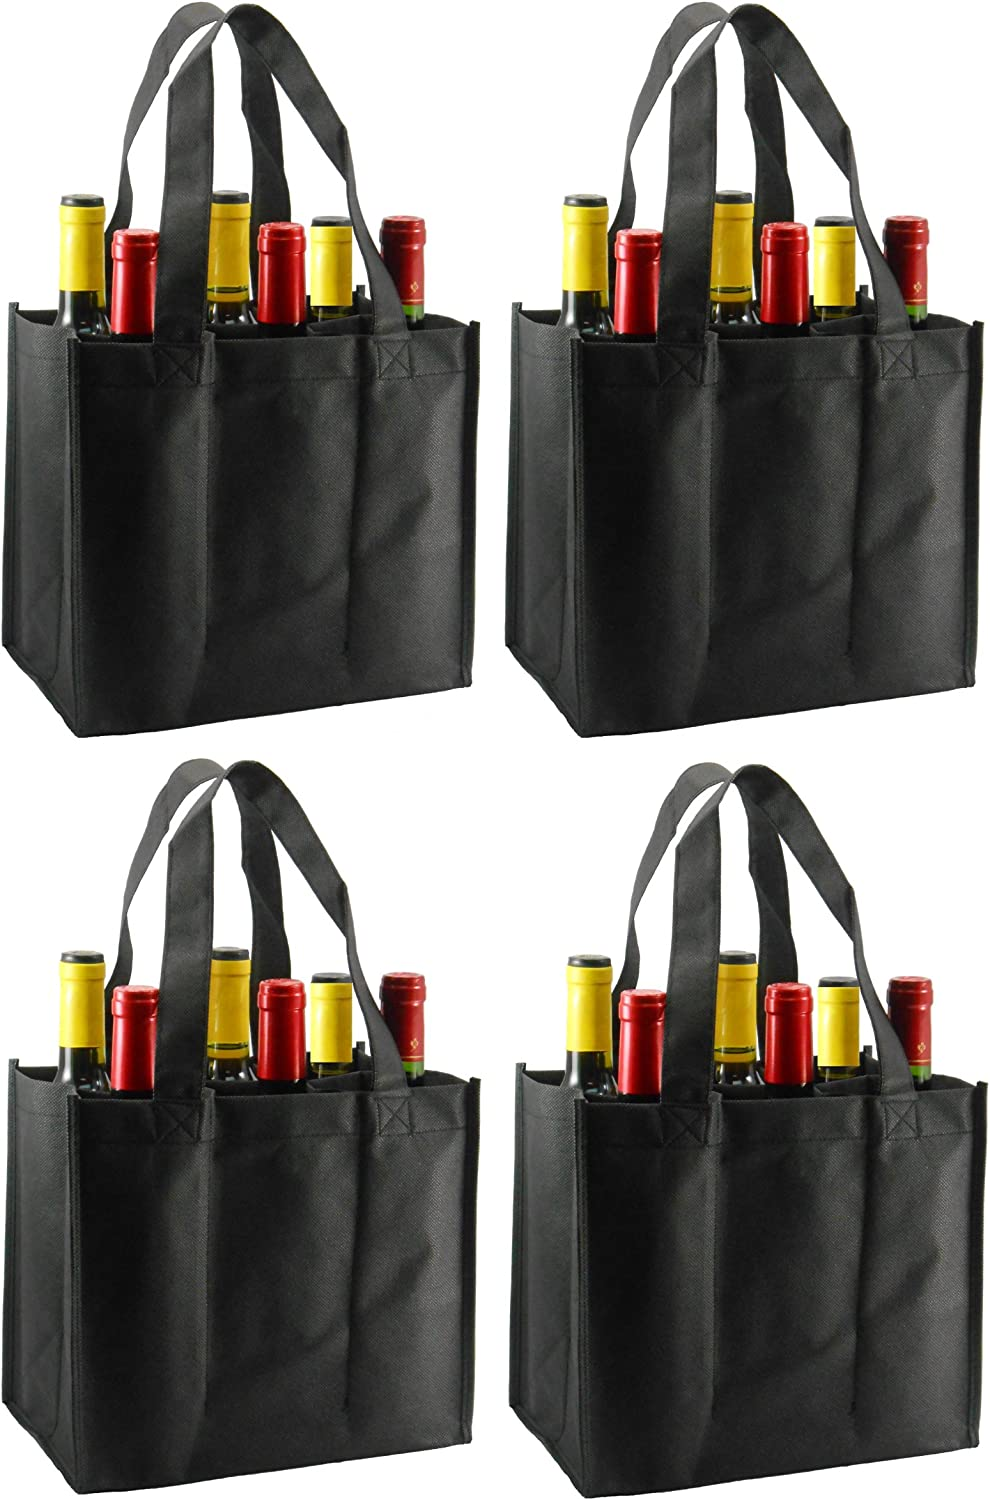 Reusable Non-Printed Wine Tote- 4 Pack (Black, 6 Bottle)